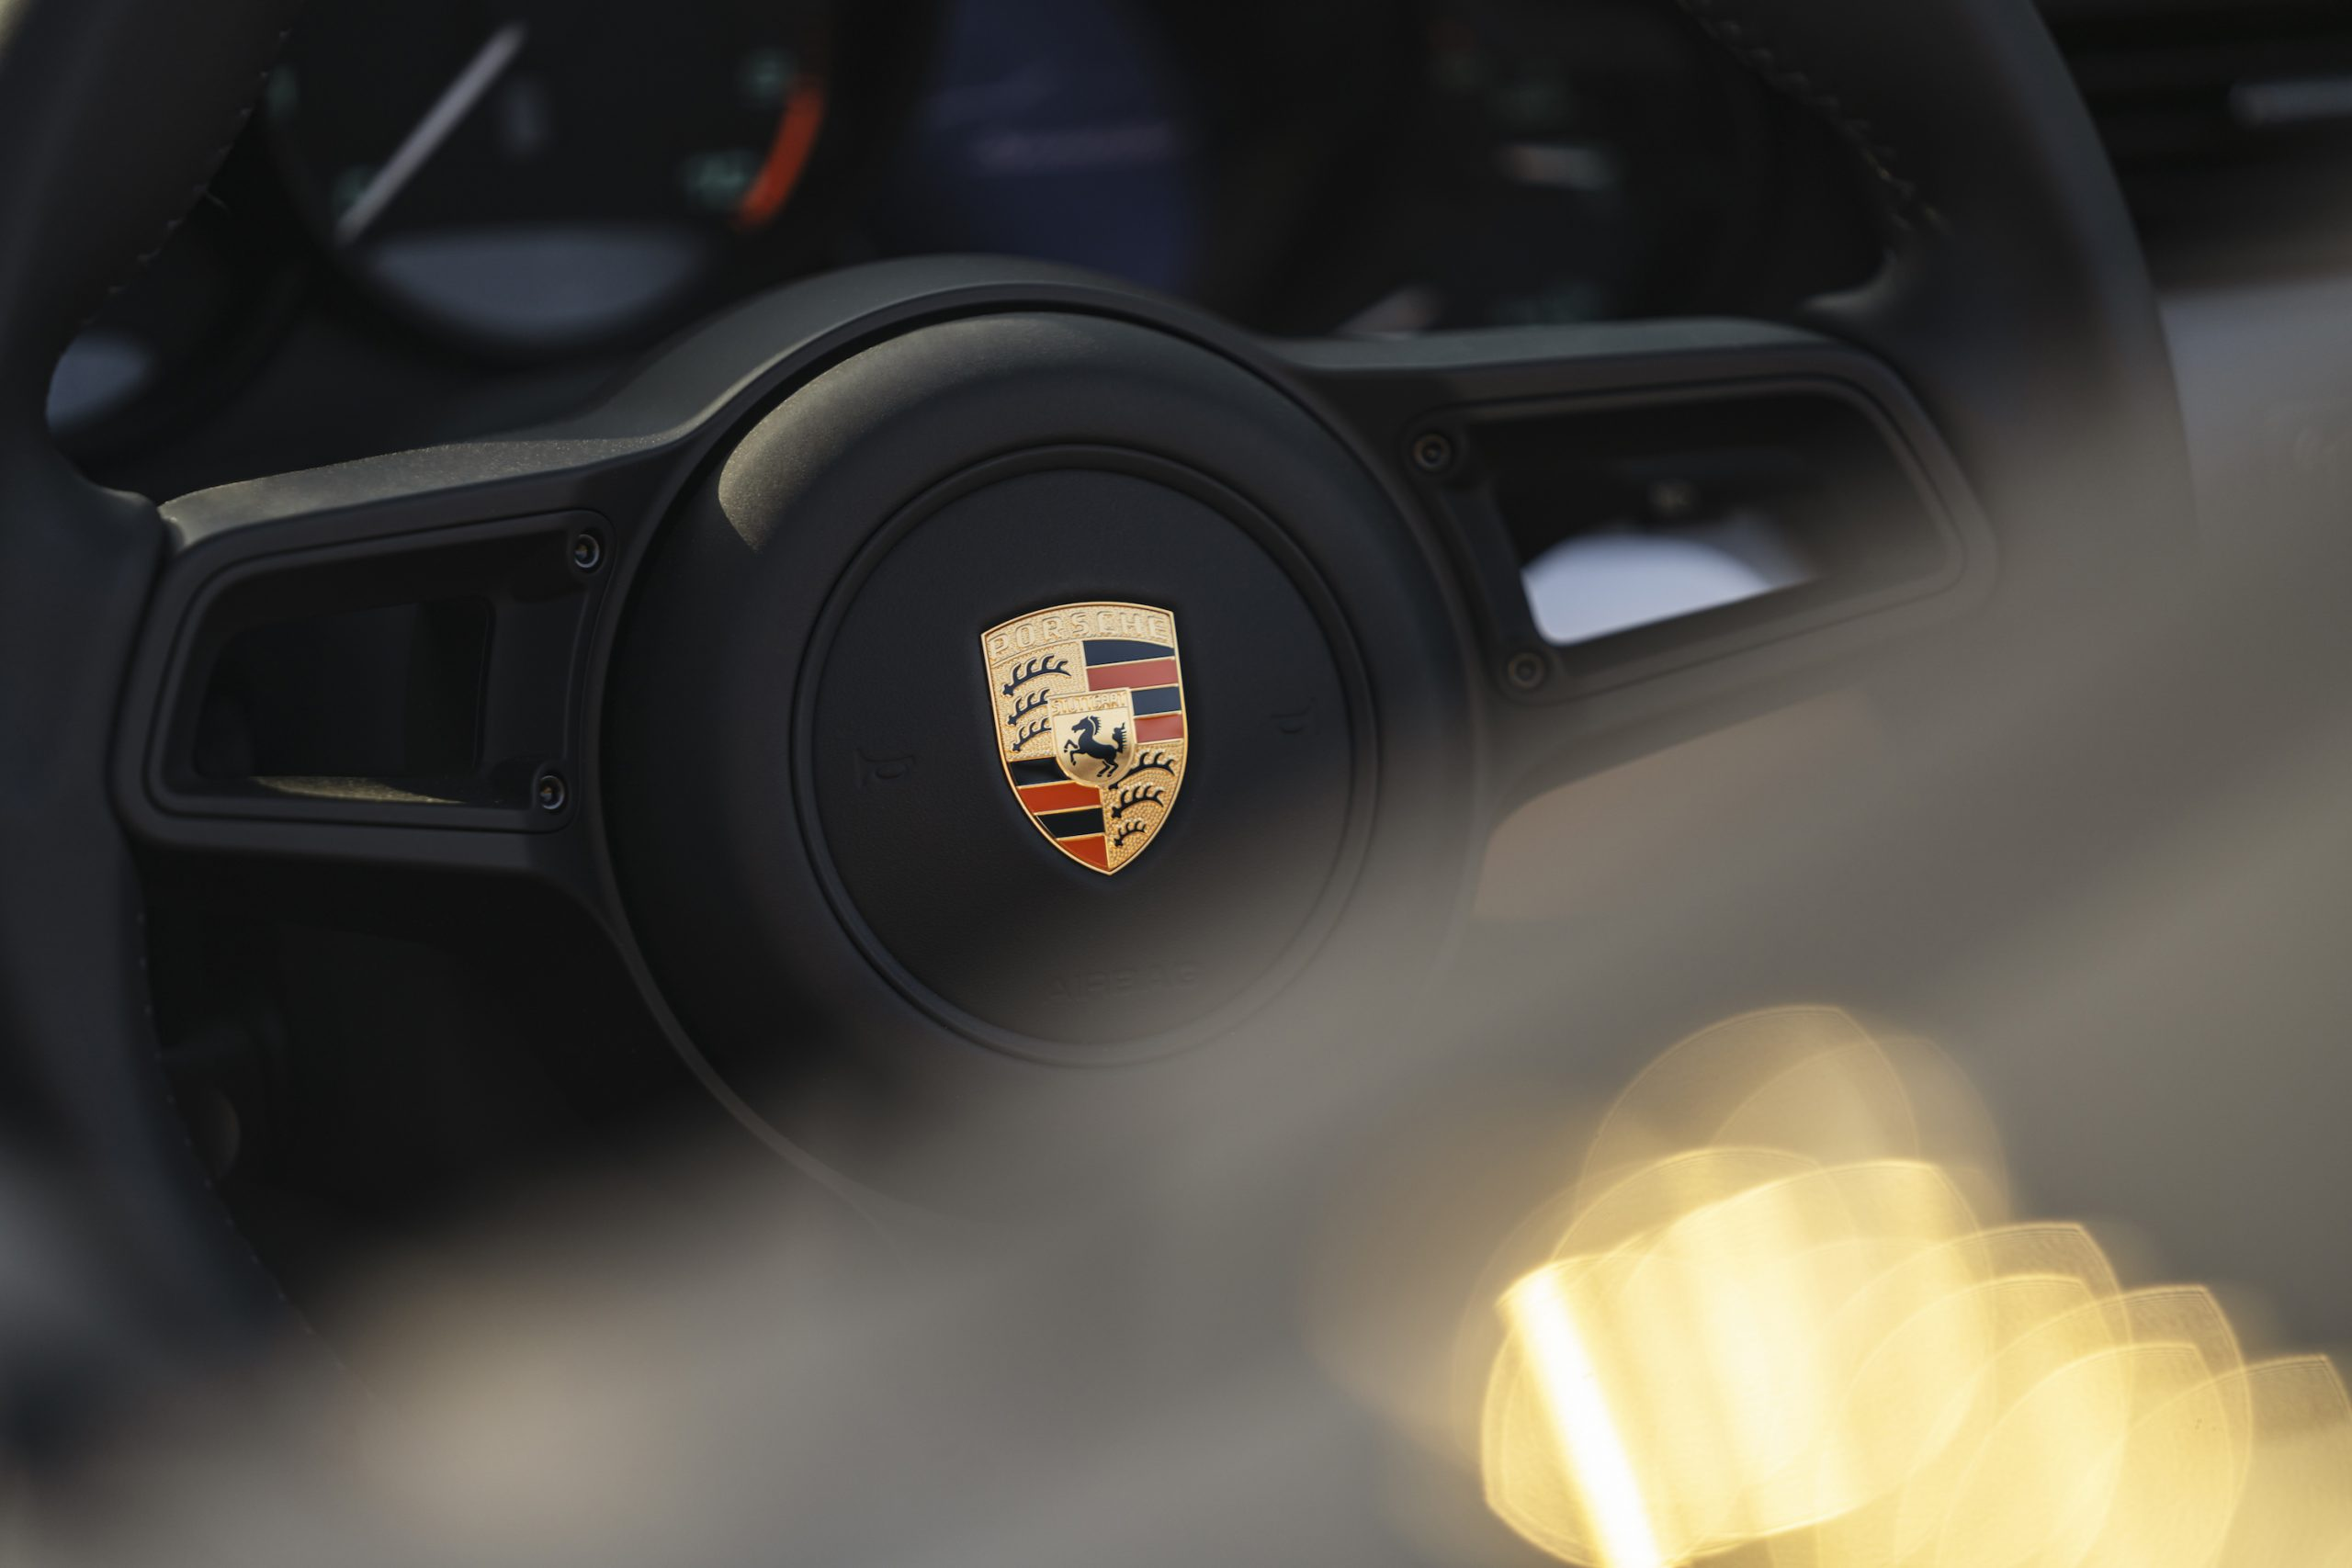 2019 Porsche 911 Speedster Heritage Design Steering Wheel